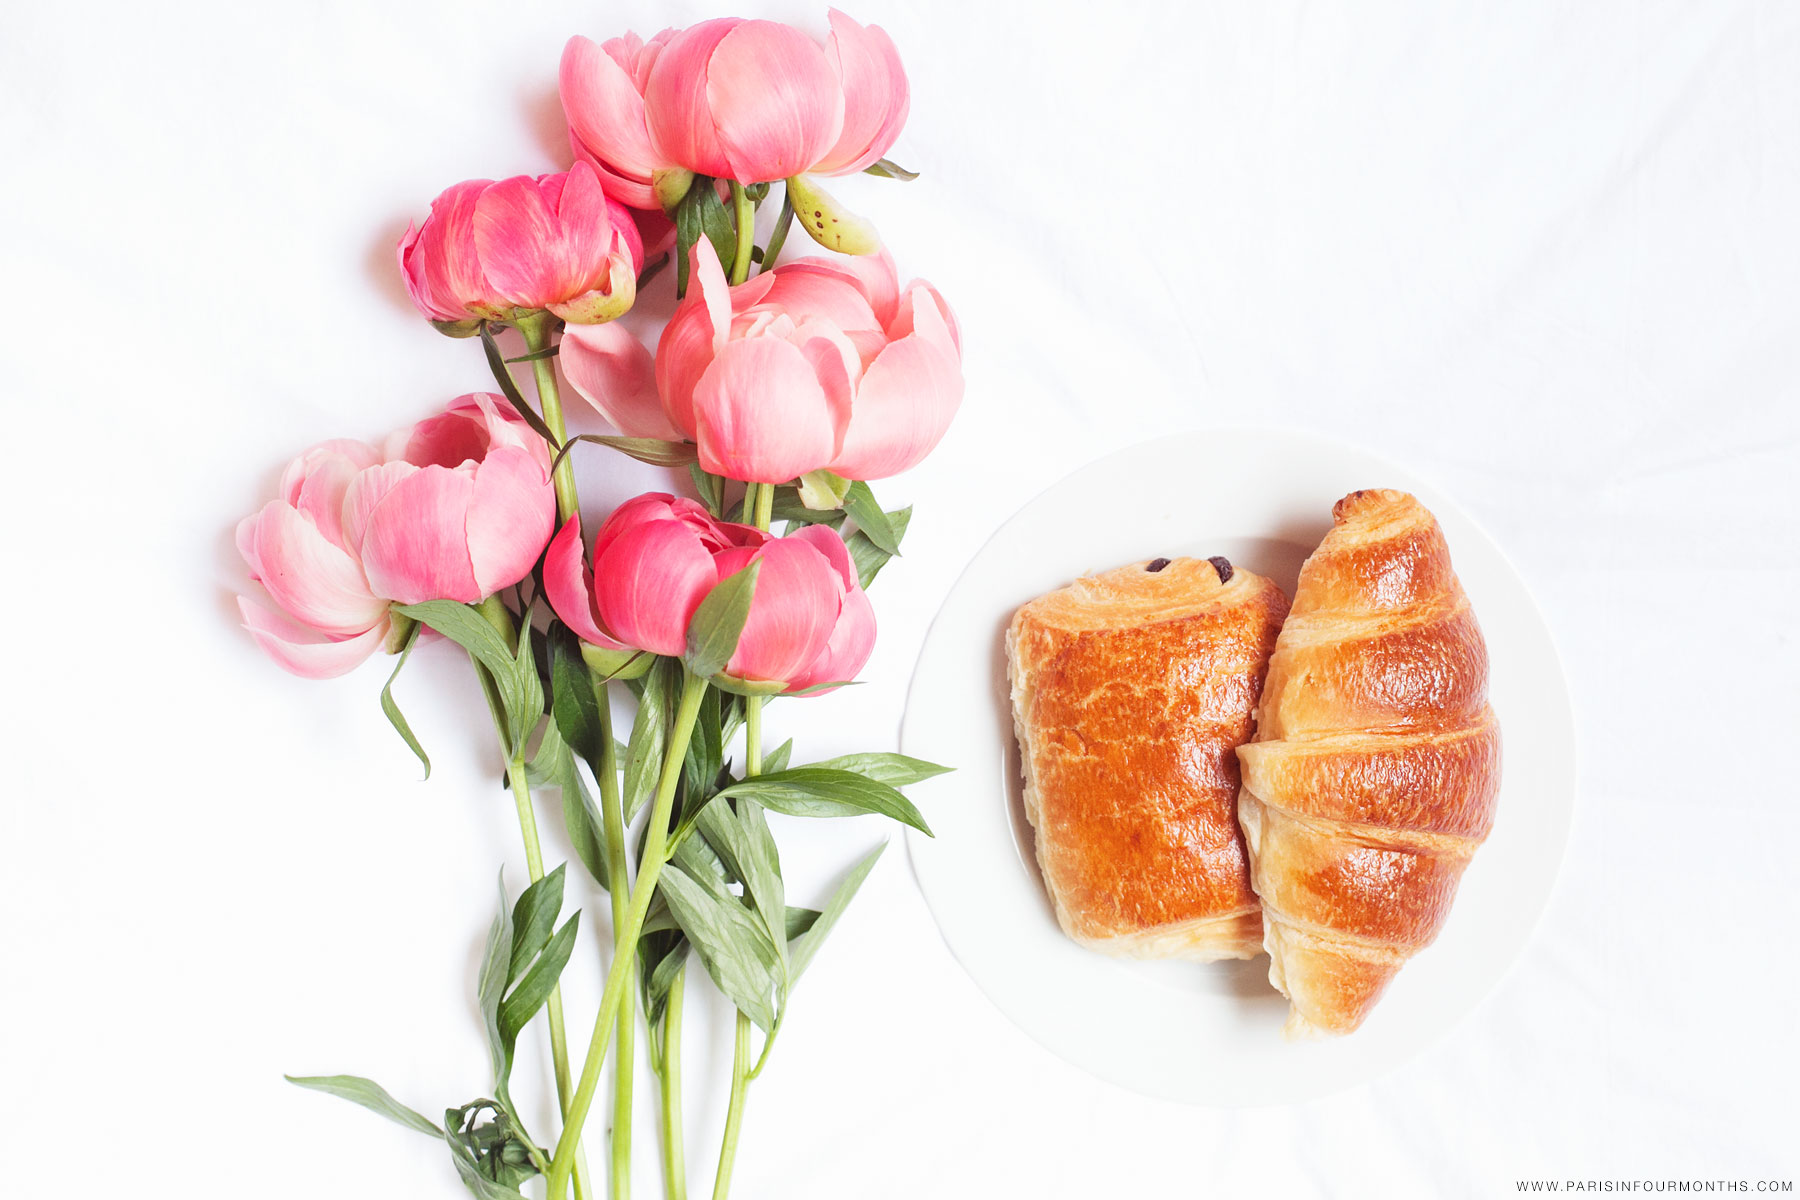 Breakfast in bed by Carin Olsson (Paris in Four Months)